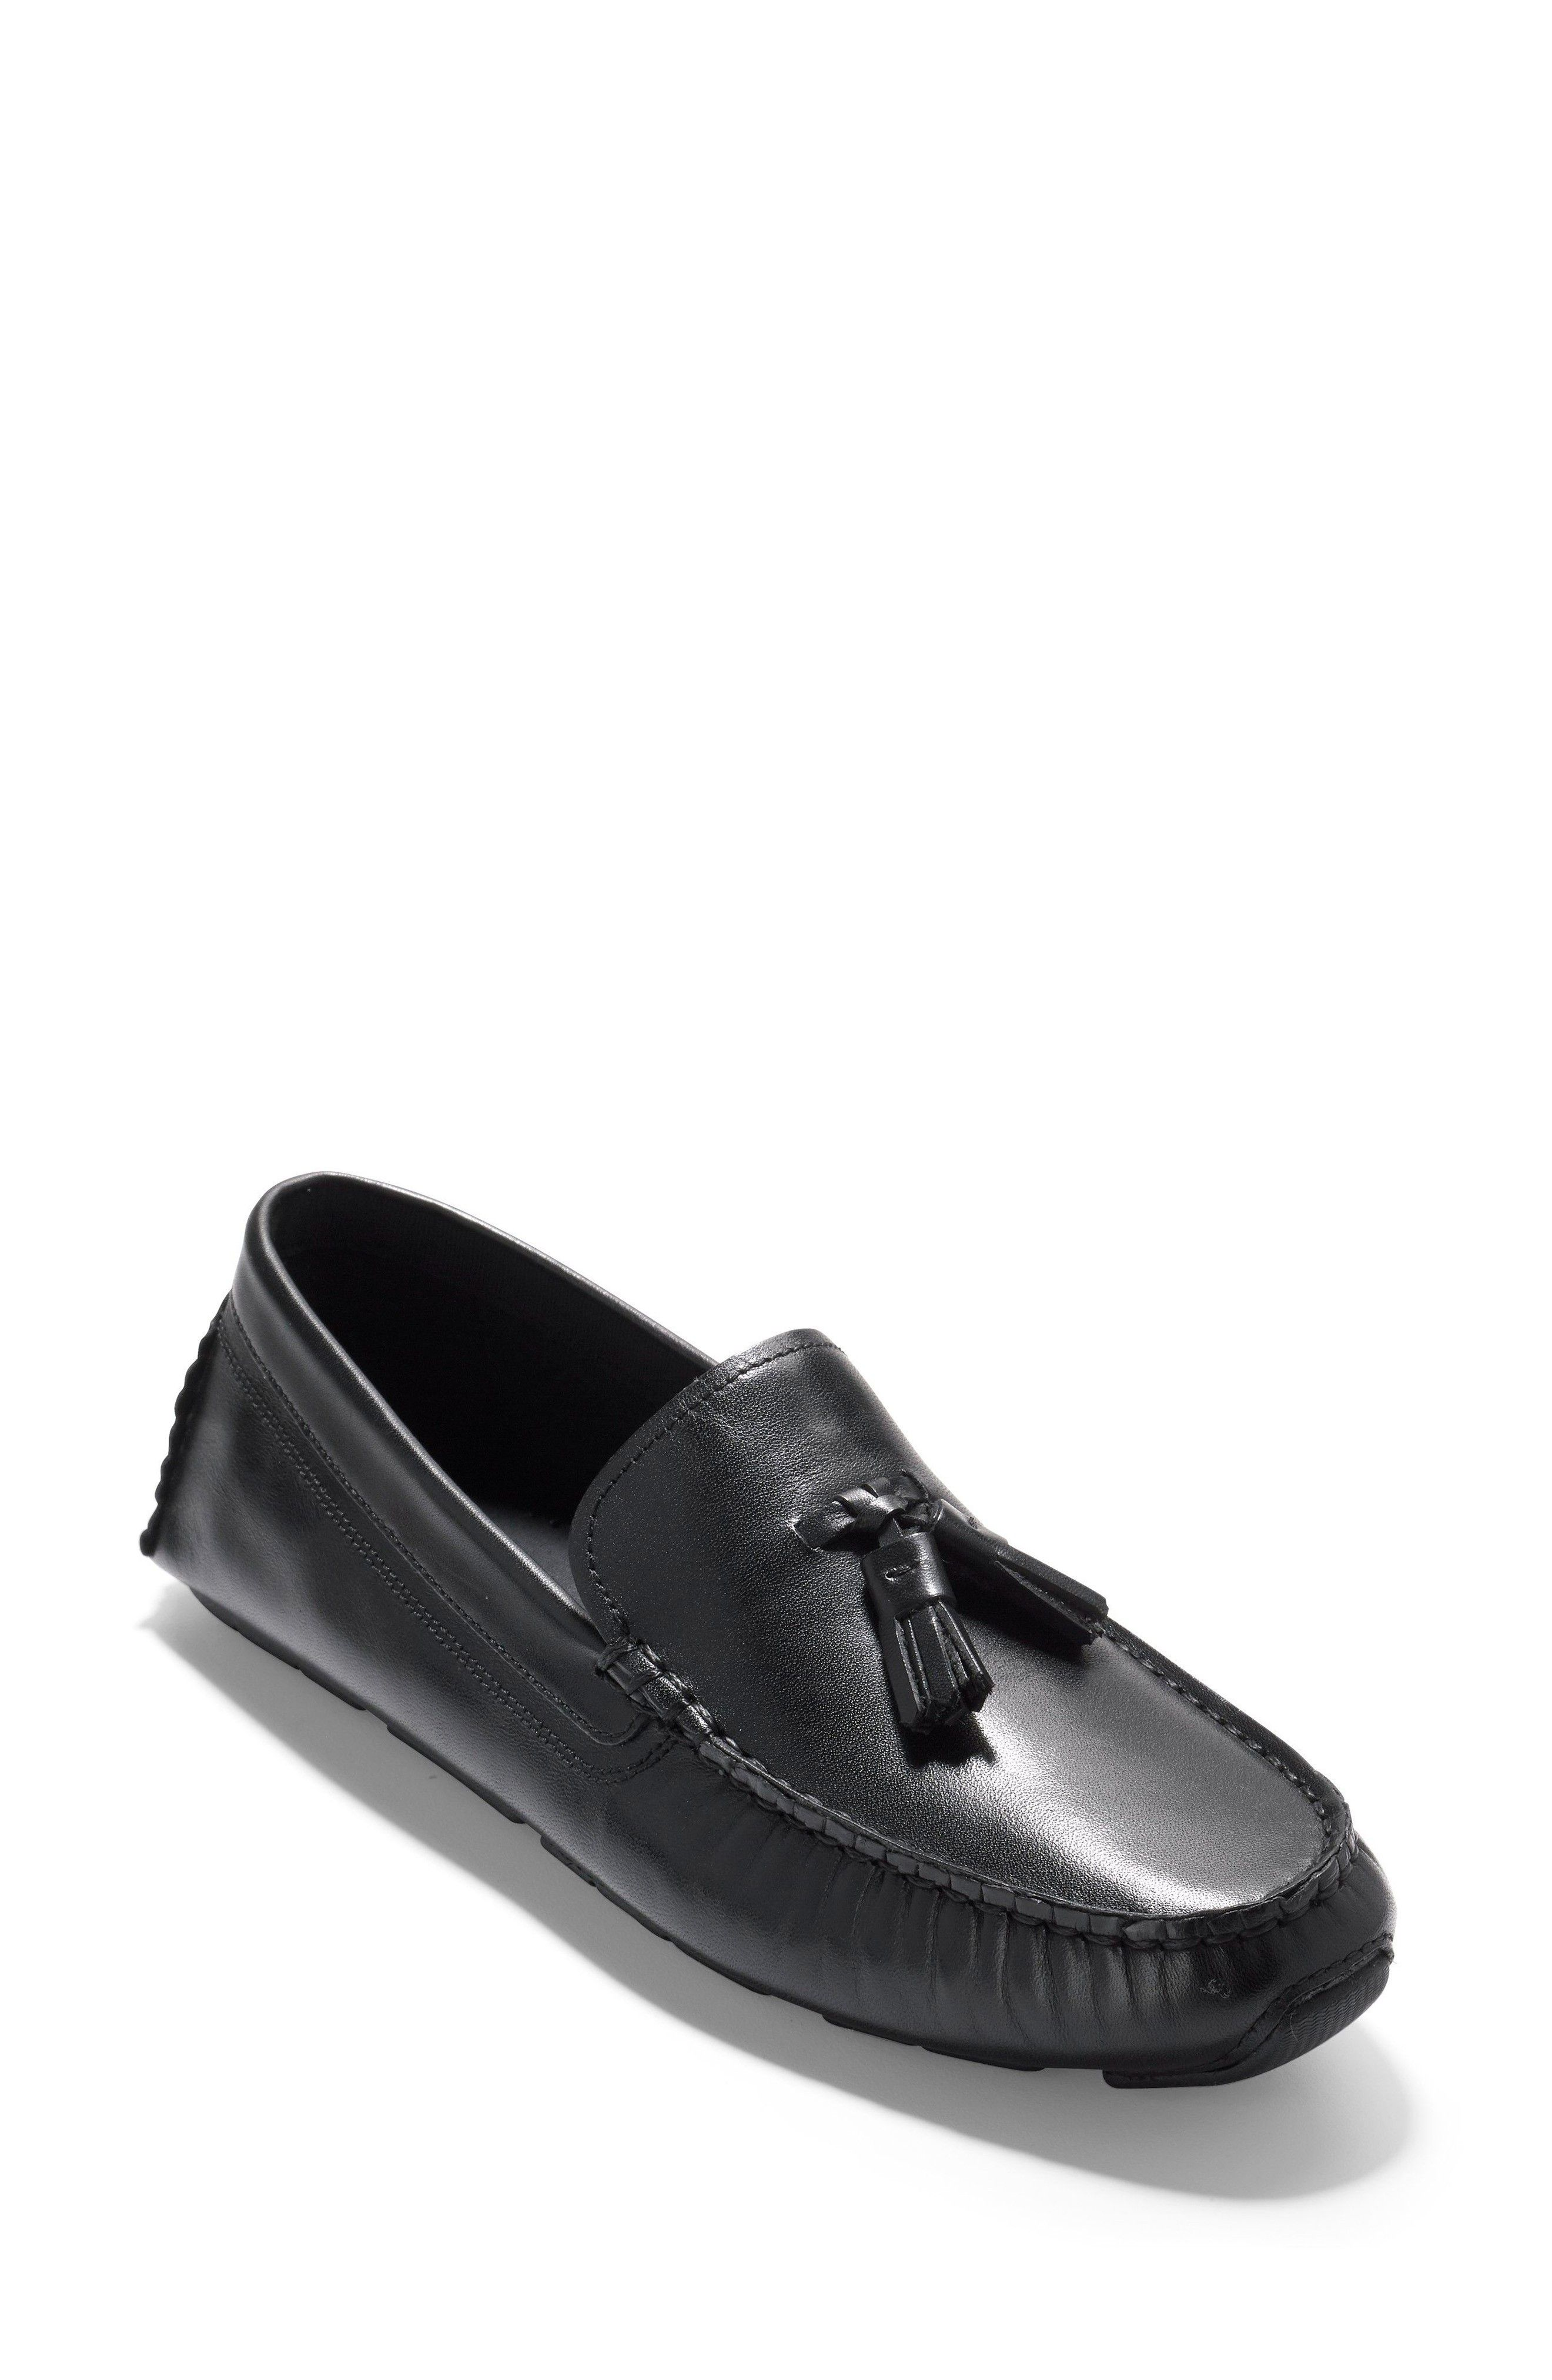 d5e8ca91b4e New COLE HAAN Rodeo Tassel Driving Loafer online. New COLE HAAN Shoes.   130